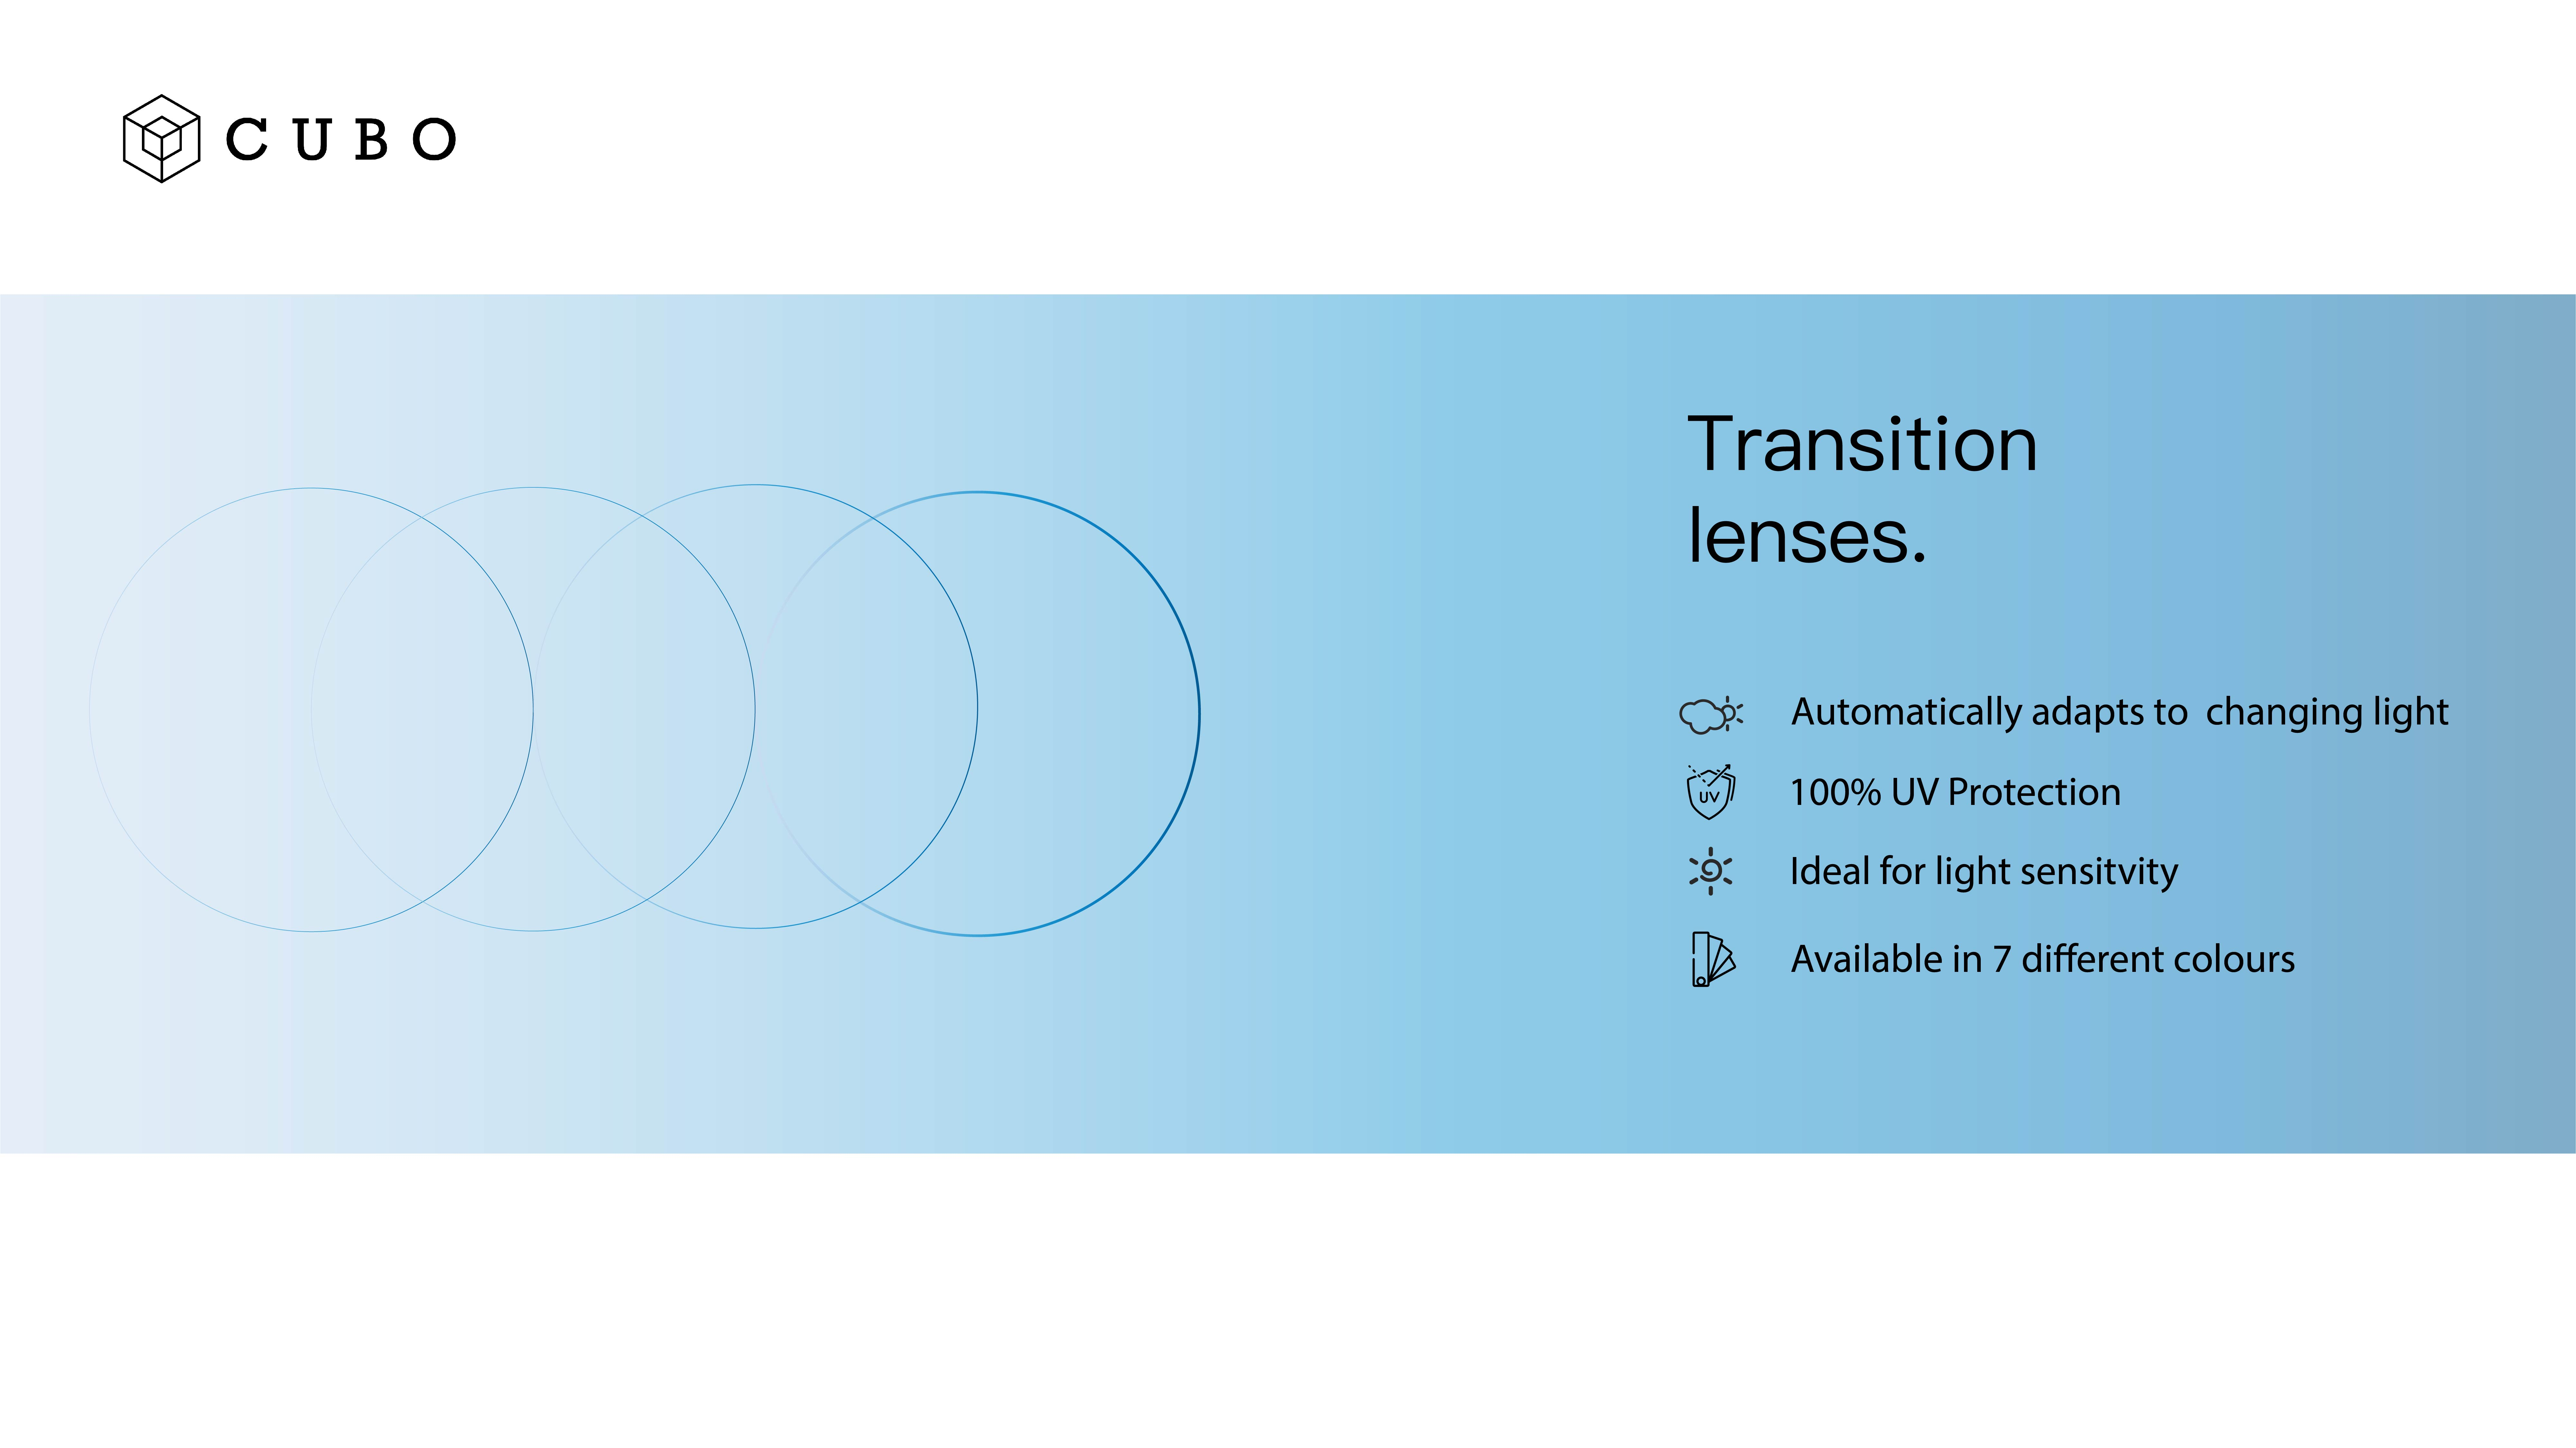 transitions-lenses-page.jpg